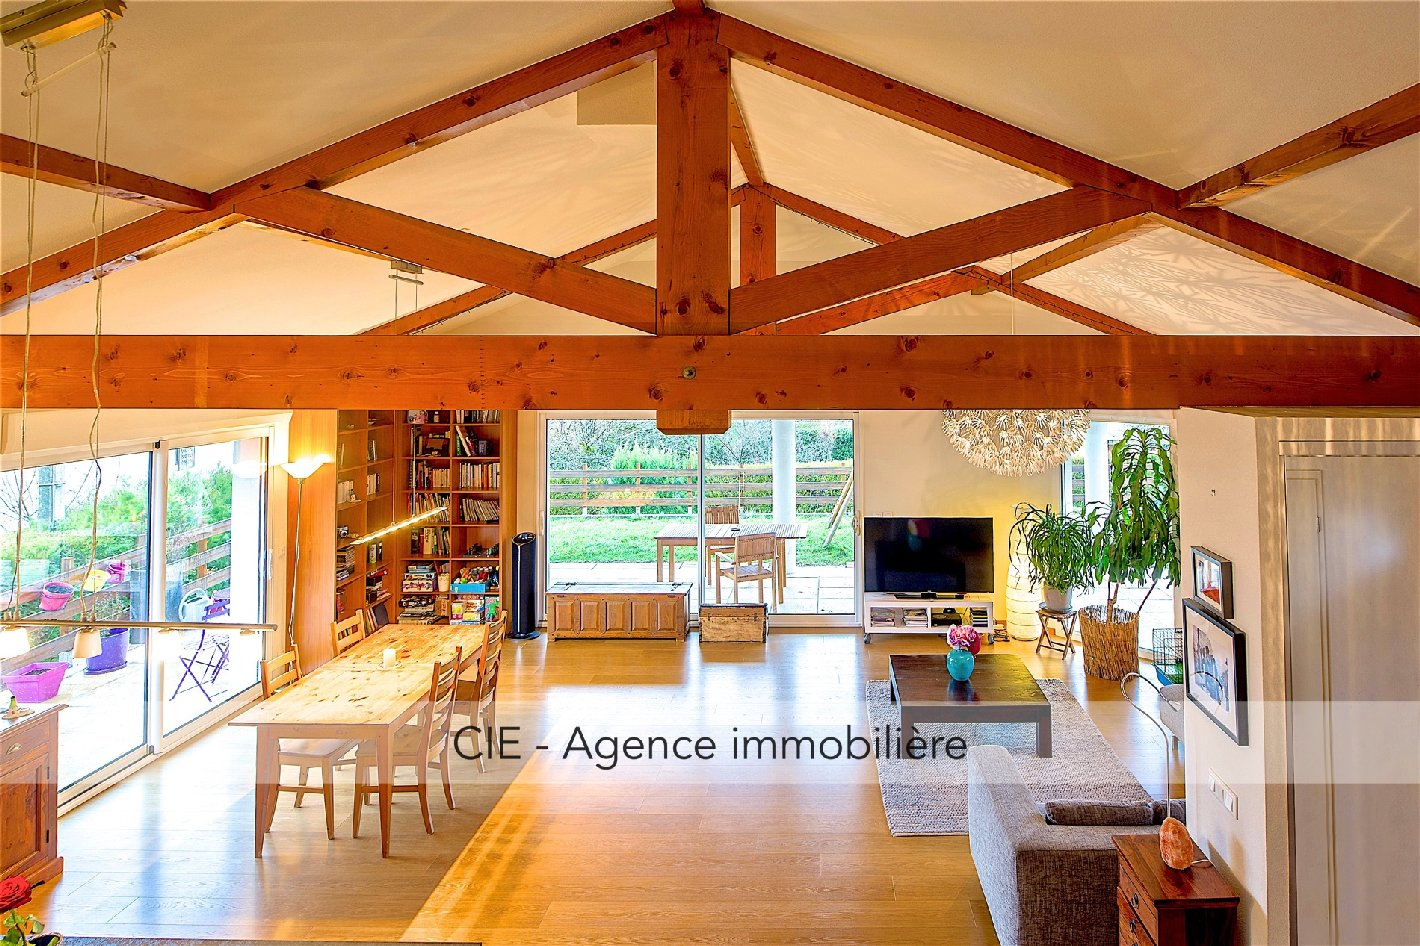 vente maison COLLONGES SOUS SALEVE 8 pieces, 151m